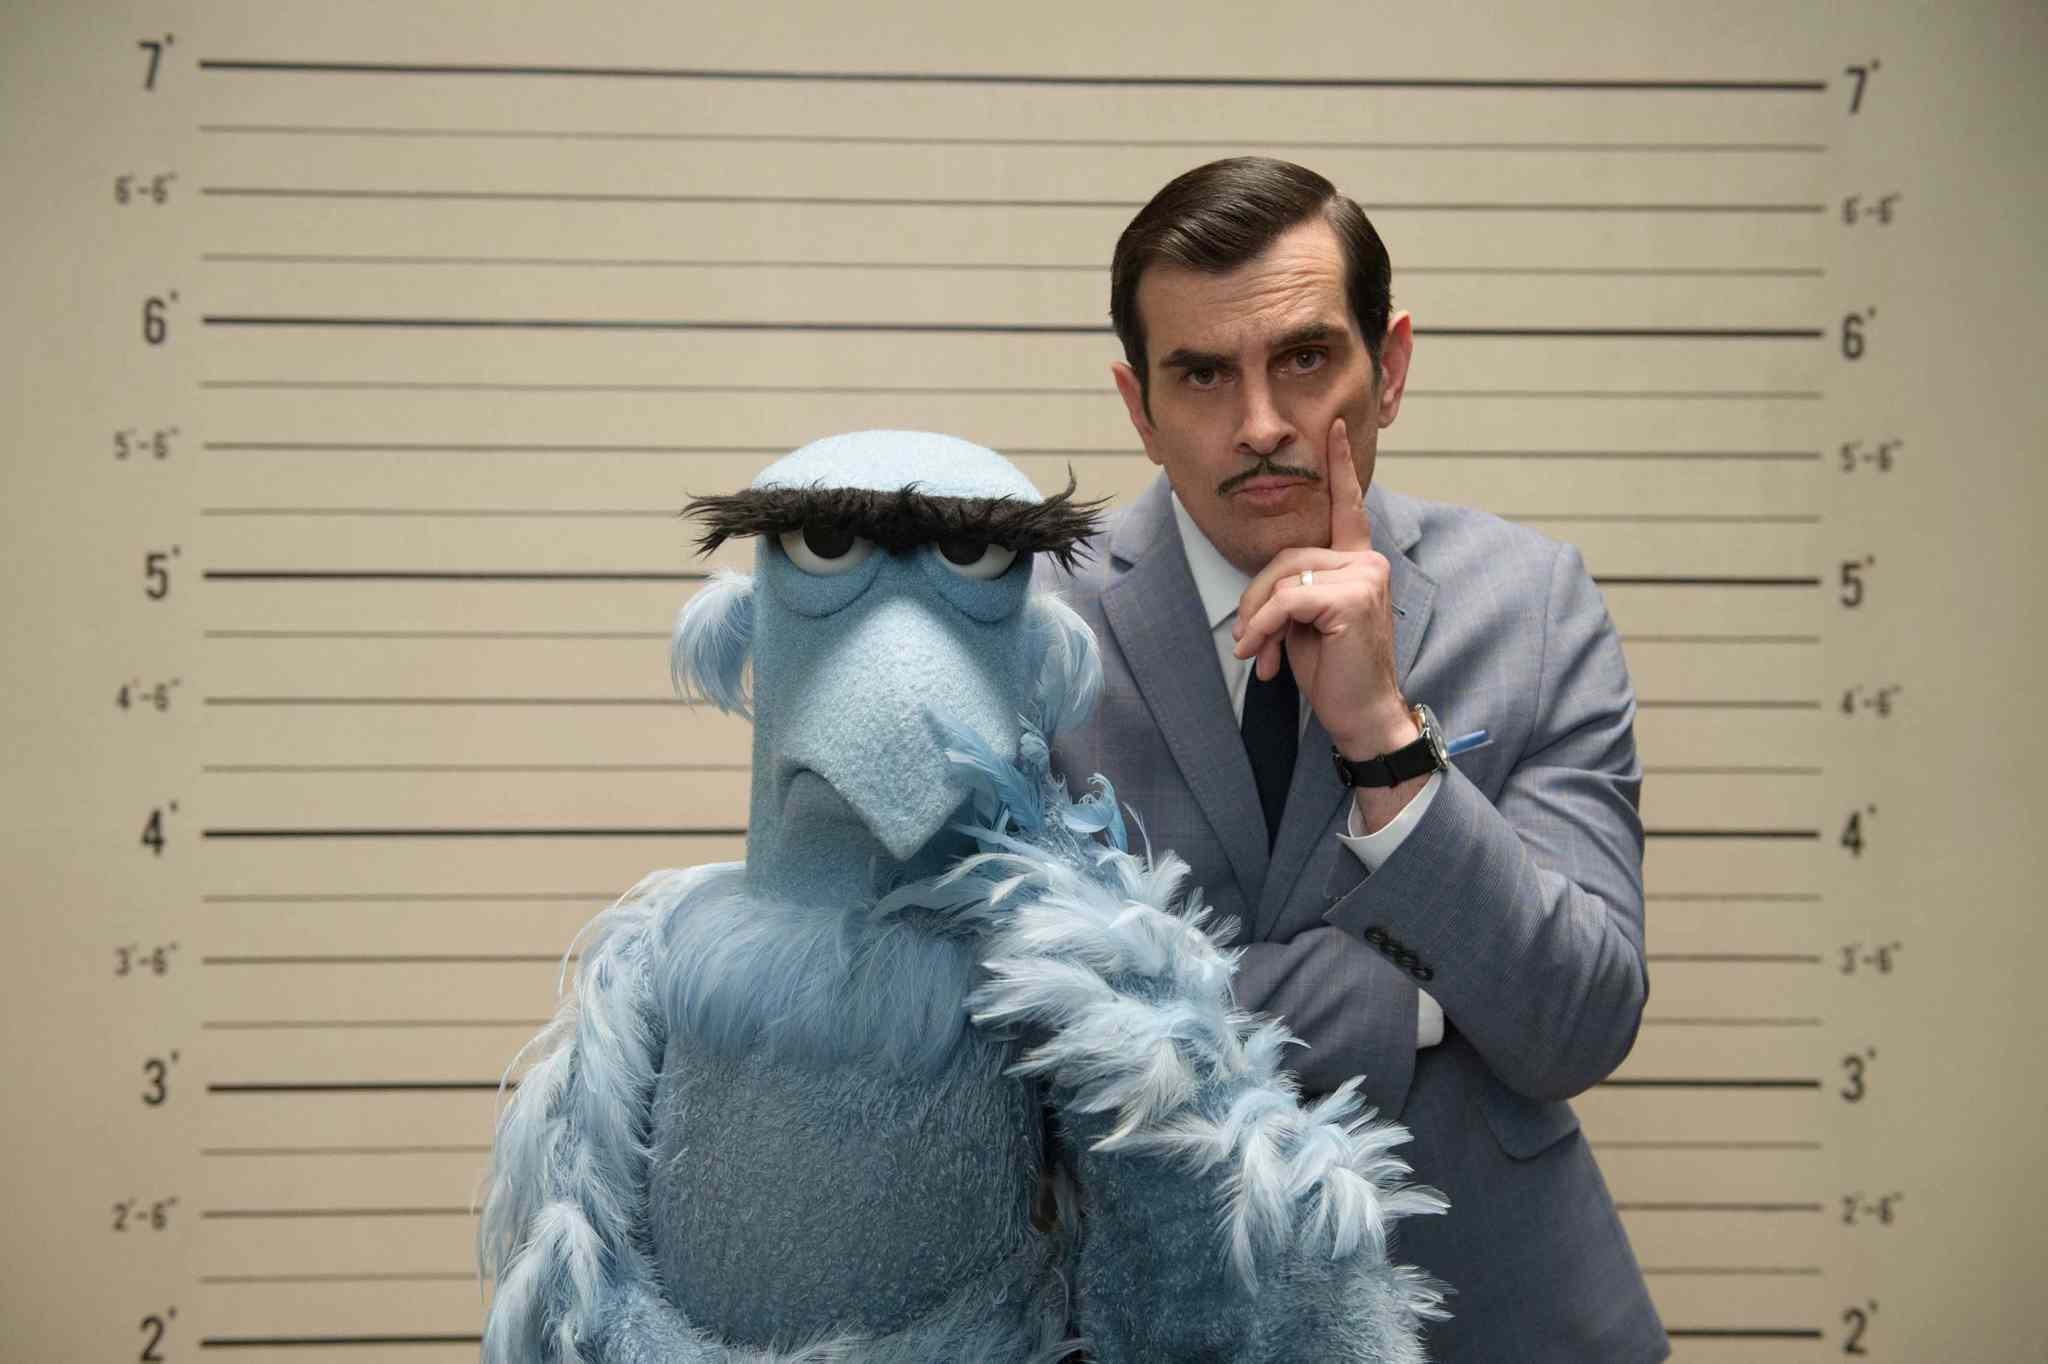 Sam the Eagle and Ty Burrell compete to see who has the most impressive glower.